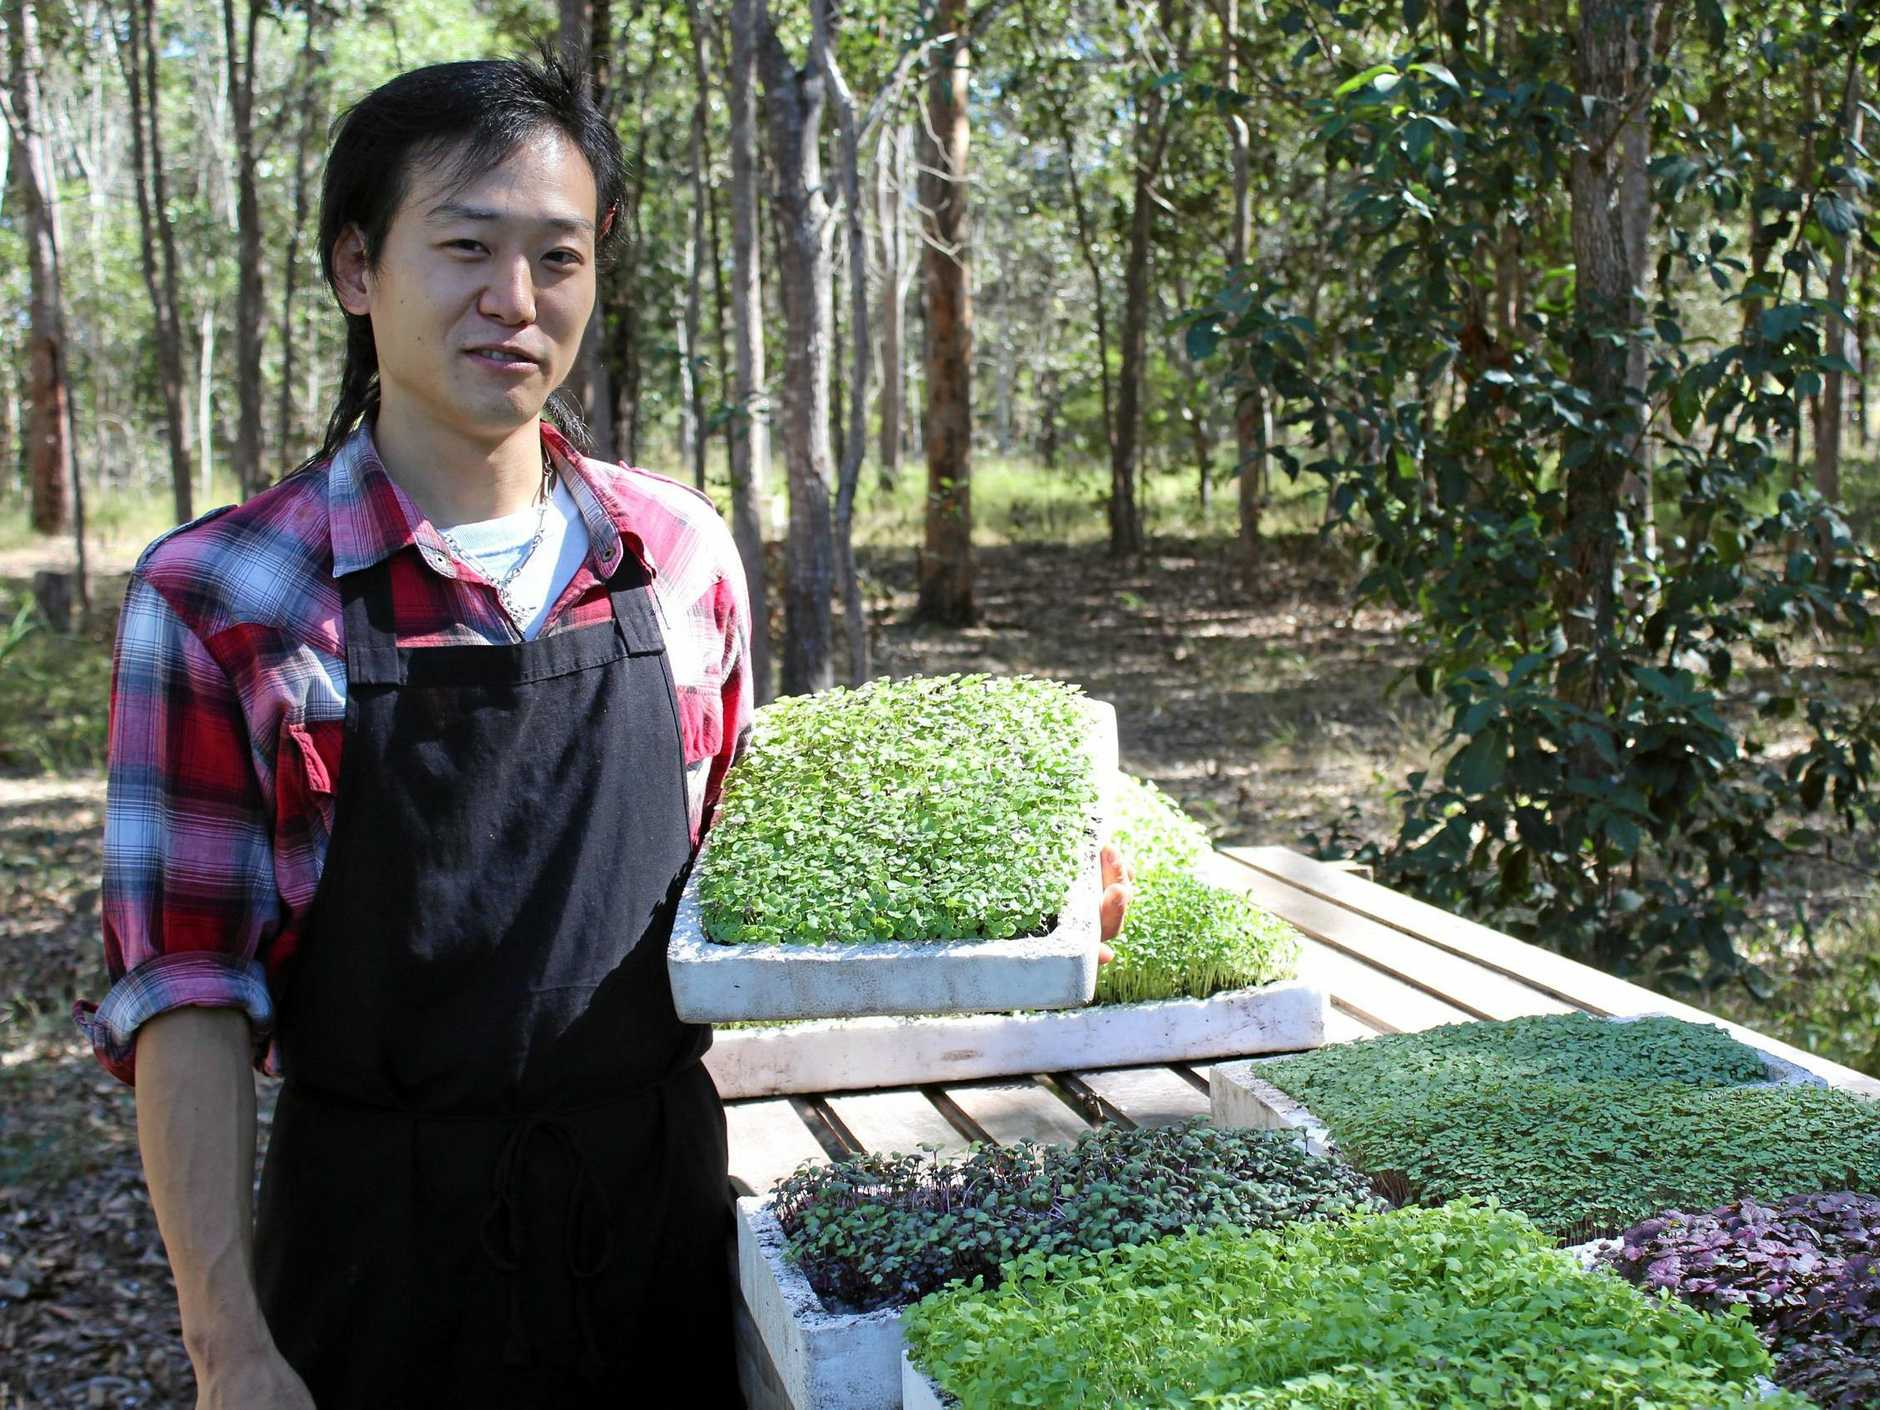 GREEN LIVING: SHO Production owner Shohei Kishishita started growing microherbs after noticing the ones he used as a chef would only last a few days.